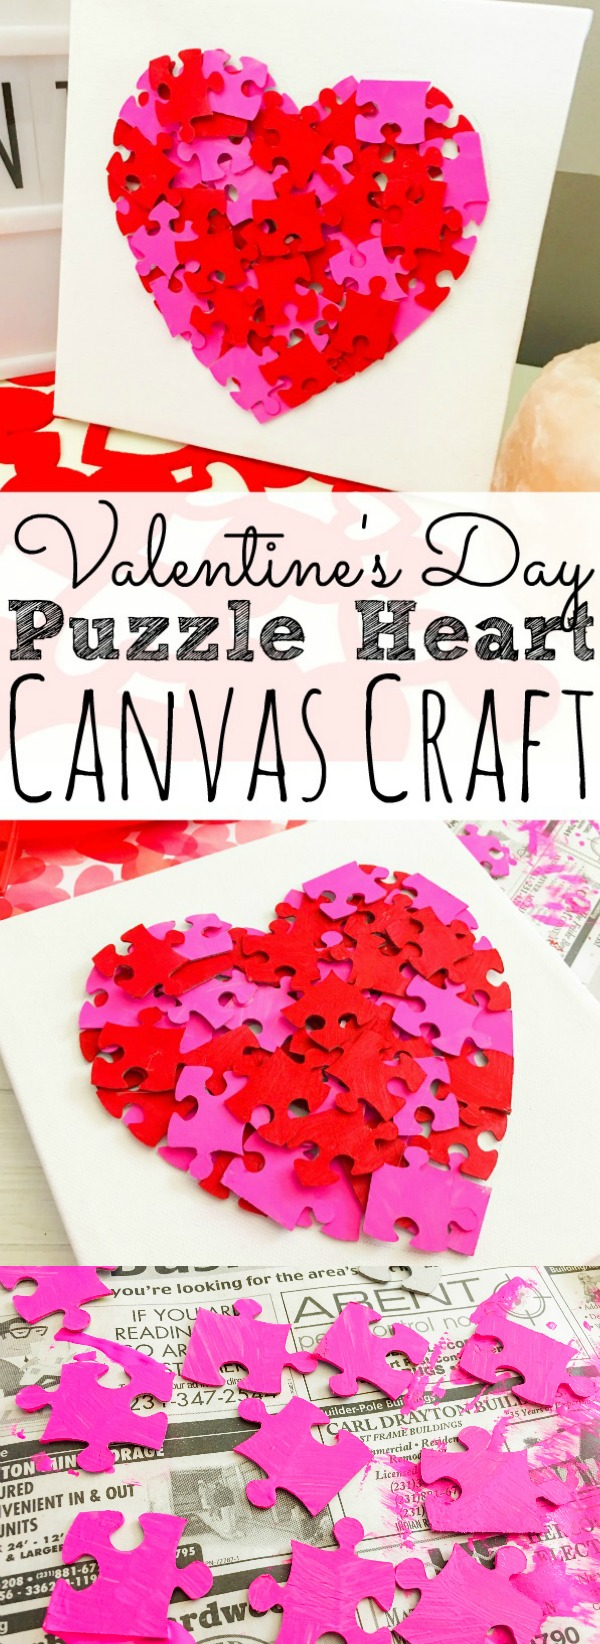 Valentines Day Puzzle Heart Canvas